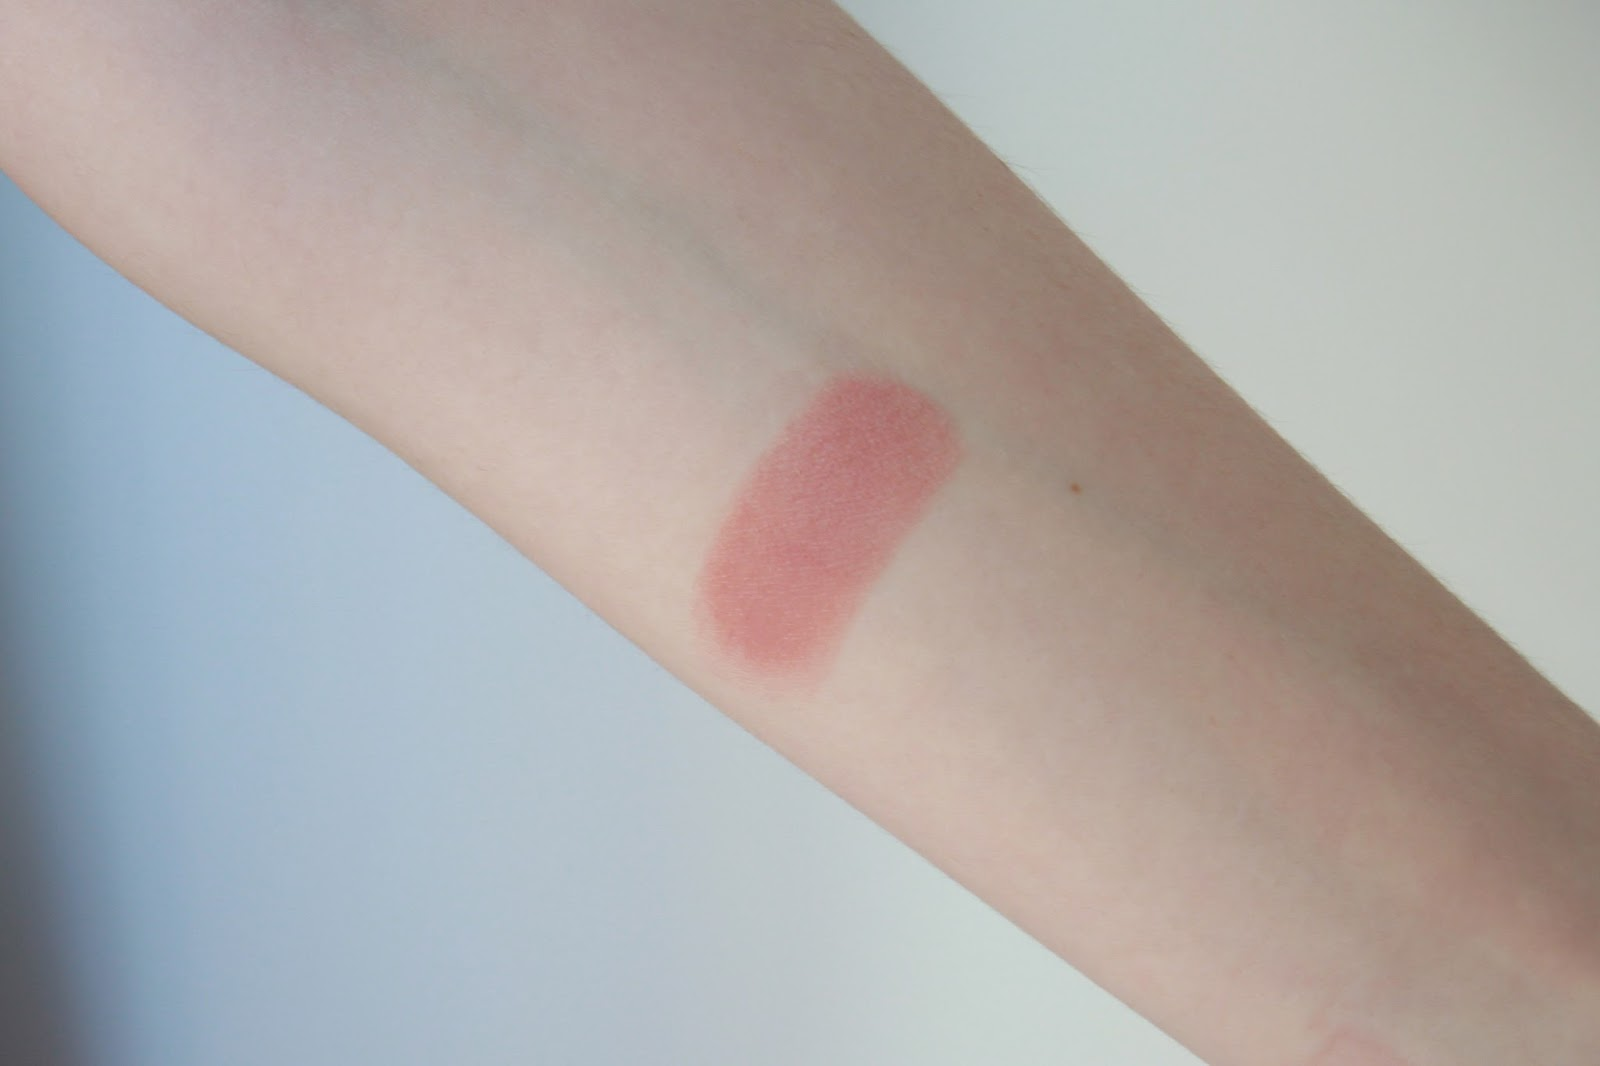 Rimmel Kate Moss 045 Arm Swatch